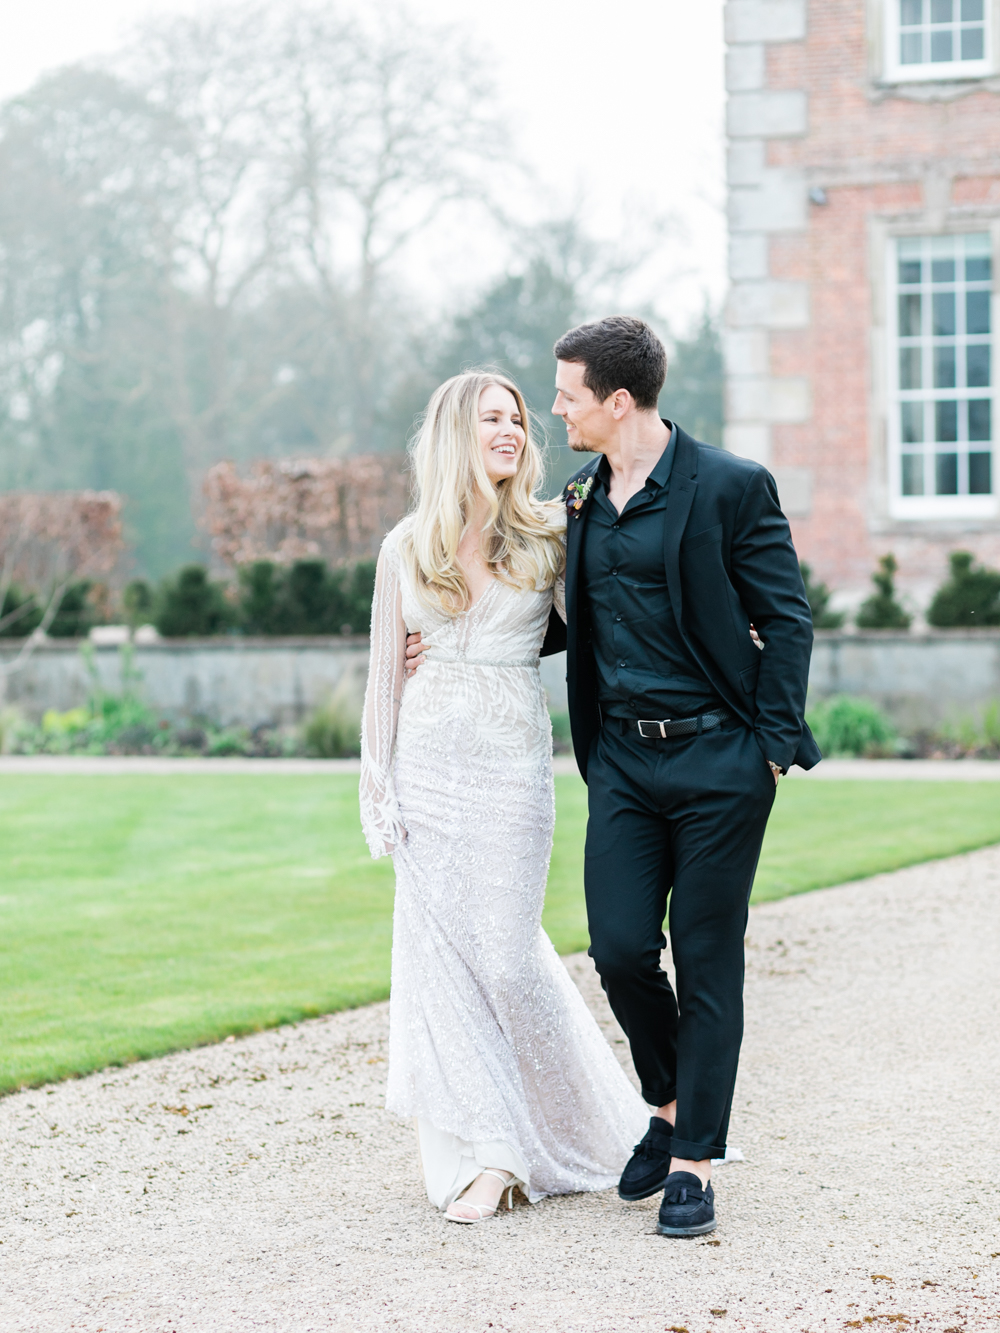 Country house wedding in the UK photo